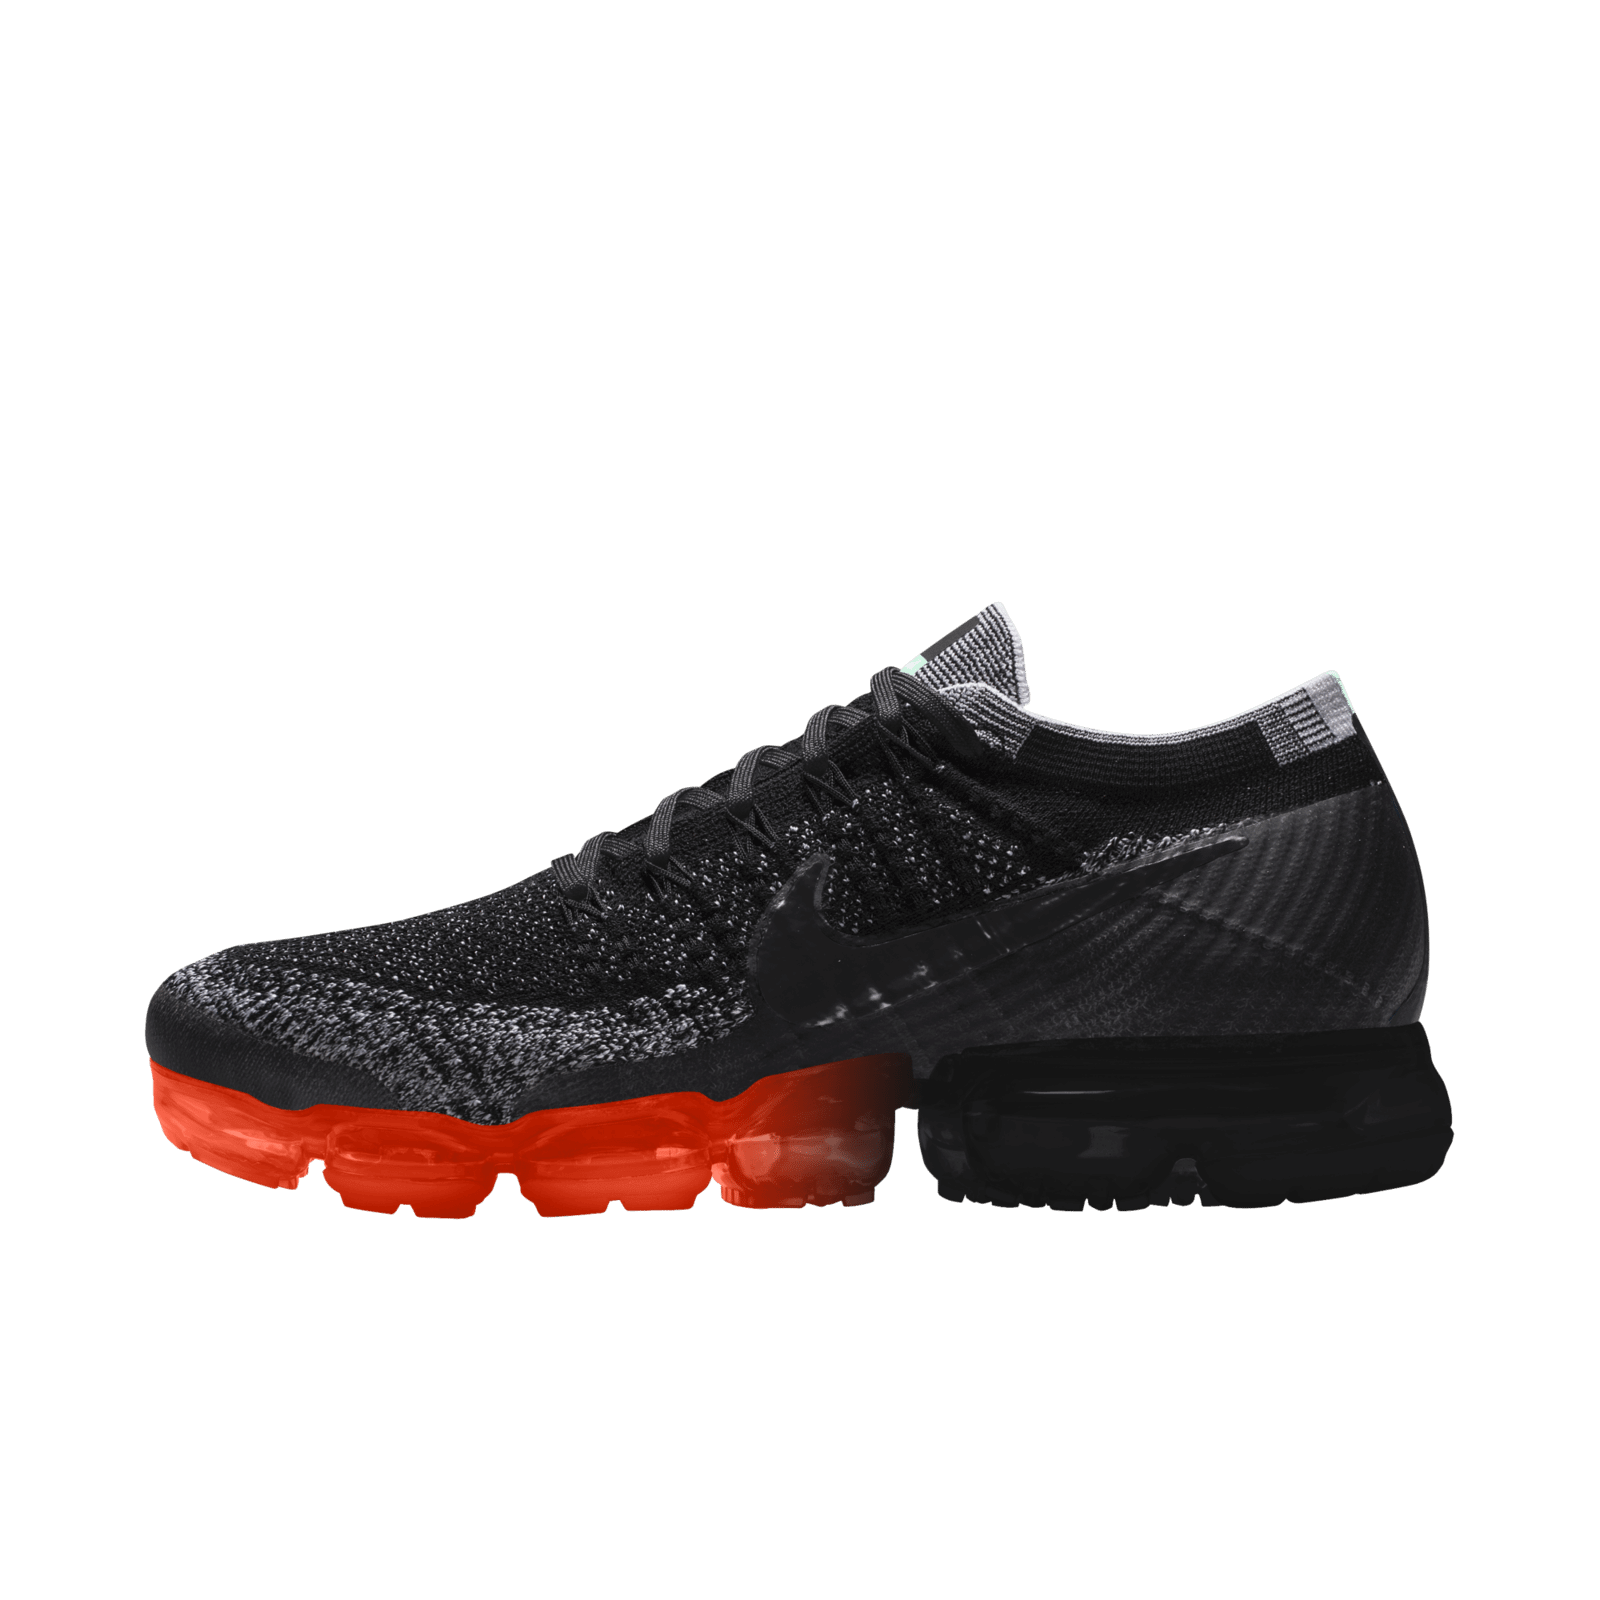 online store 9f0fb 18aa1 ... sale the nikeid air vapormax flyknit by jfs is now available exclusively  for nikeplus members and